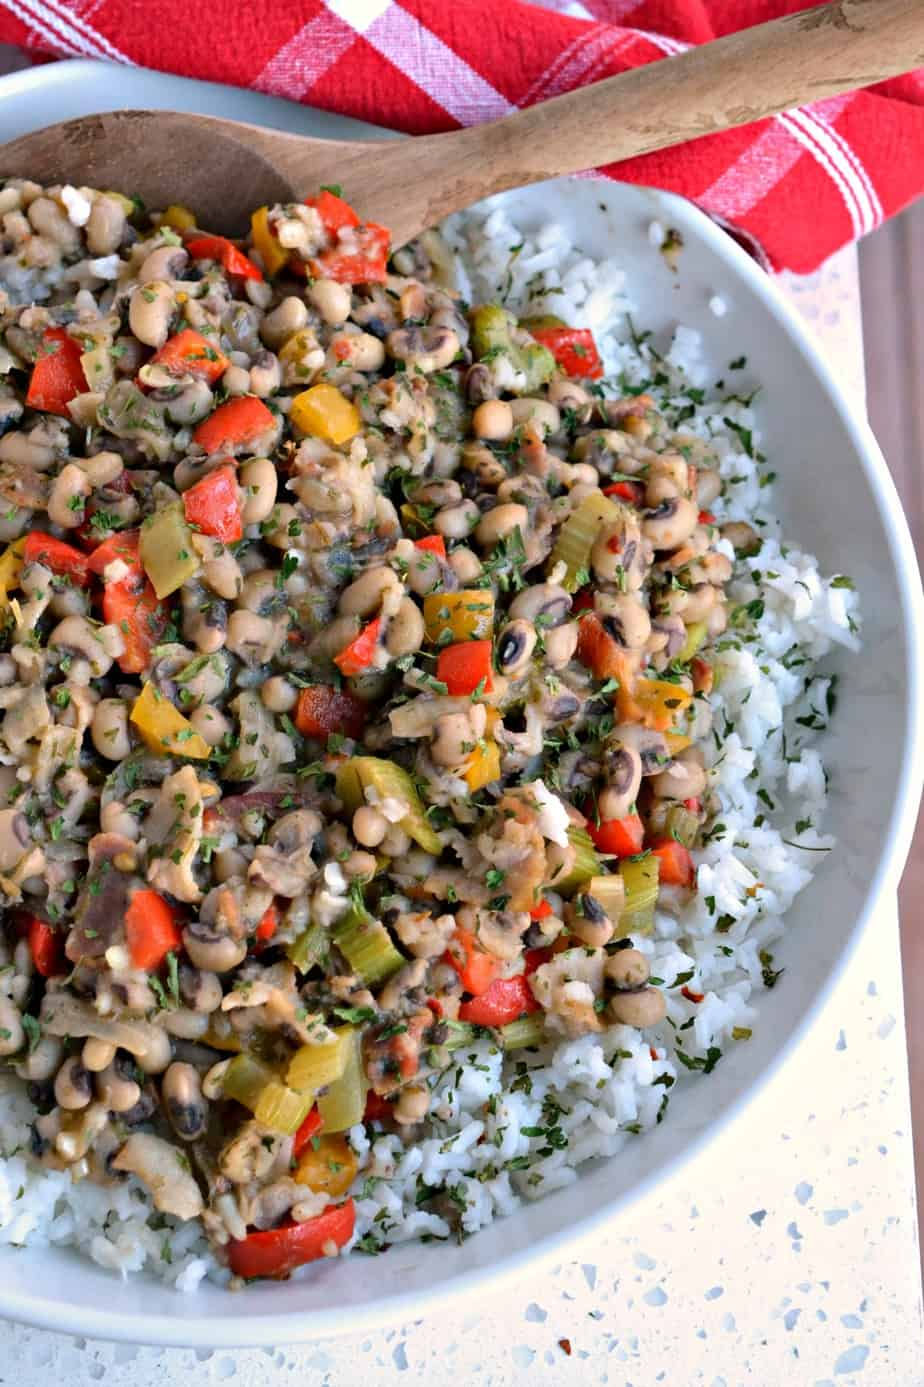 This scrumptious traditional Hoppin John recipe will quickly become one of your favorites.